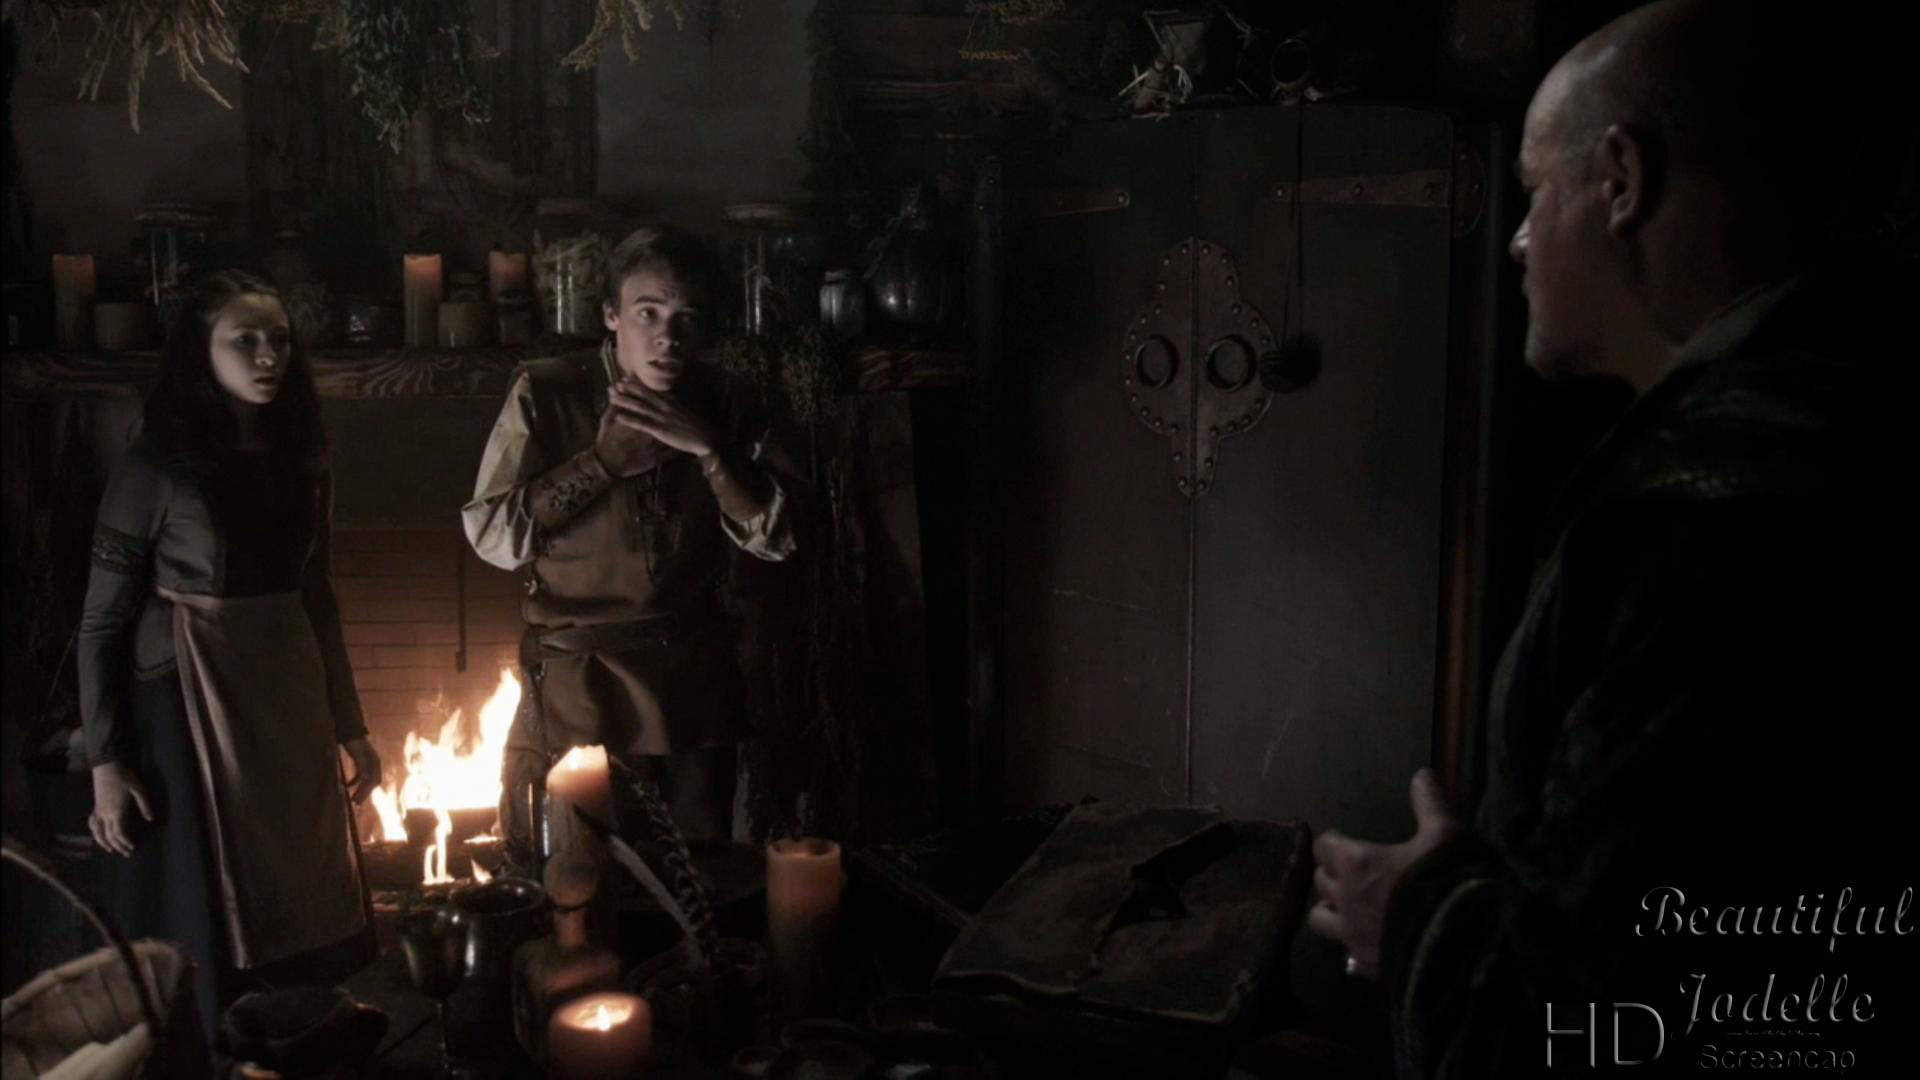 The haunting hour the series most evil sorcerer hd screencaps